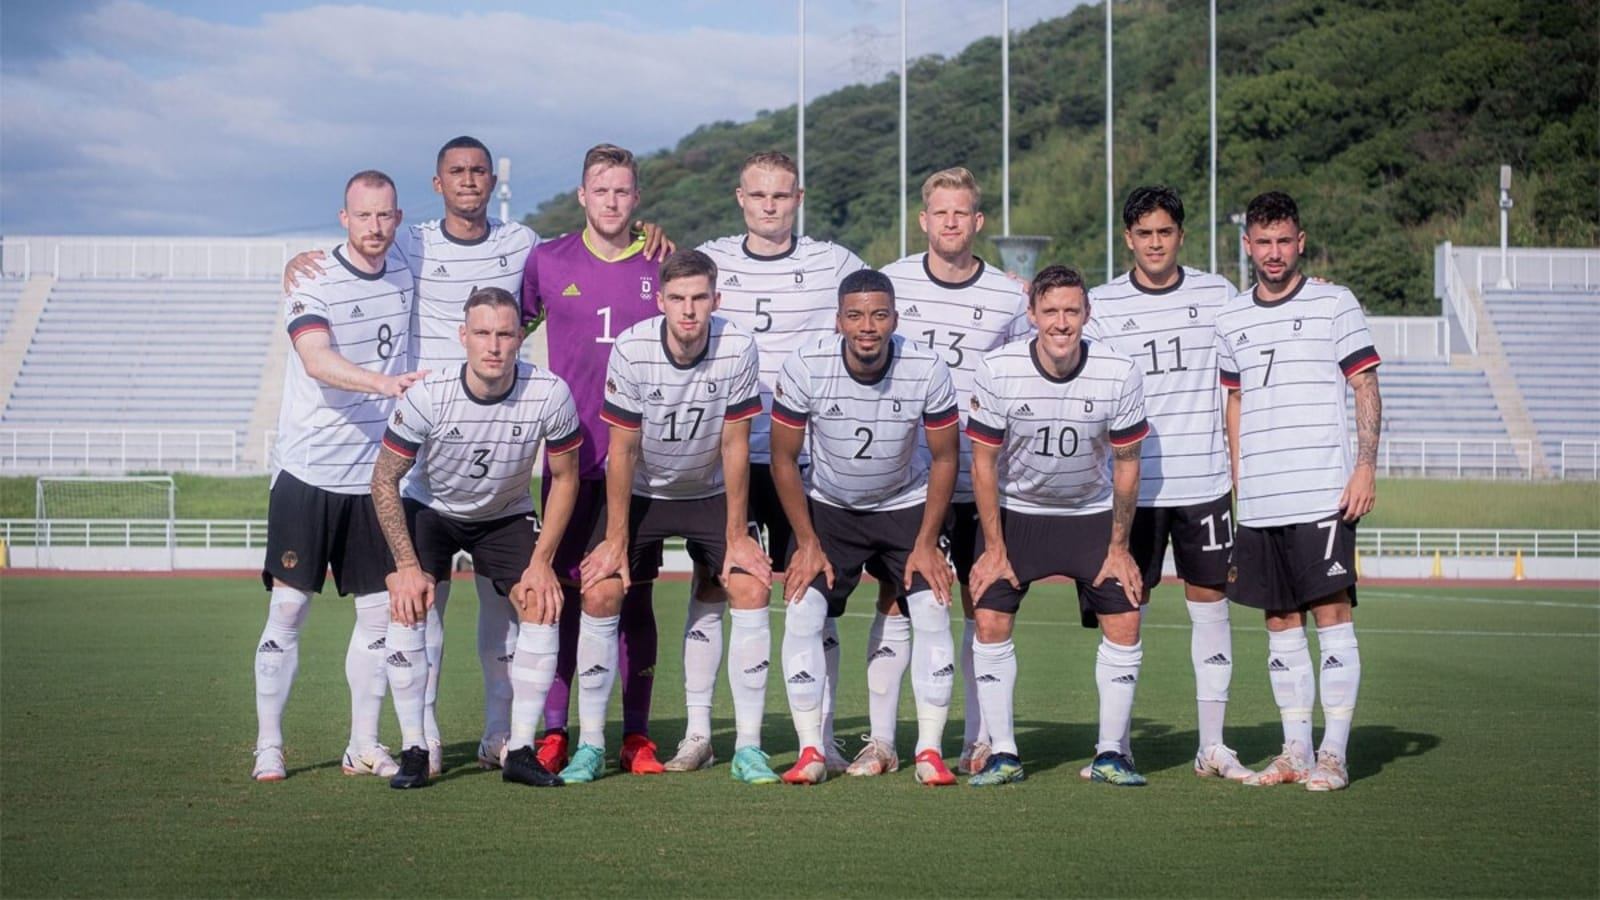 Olympics-Soccer-Germany walk off in friendly after alleged racist abuse    Olympics - Hindustan Times